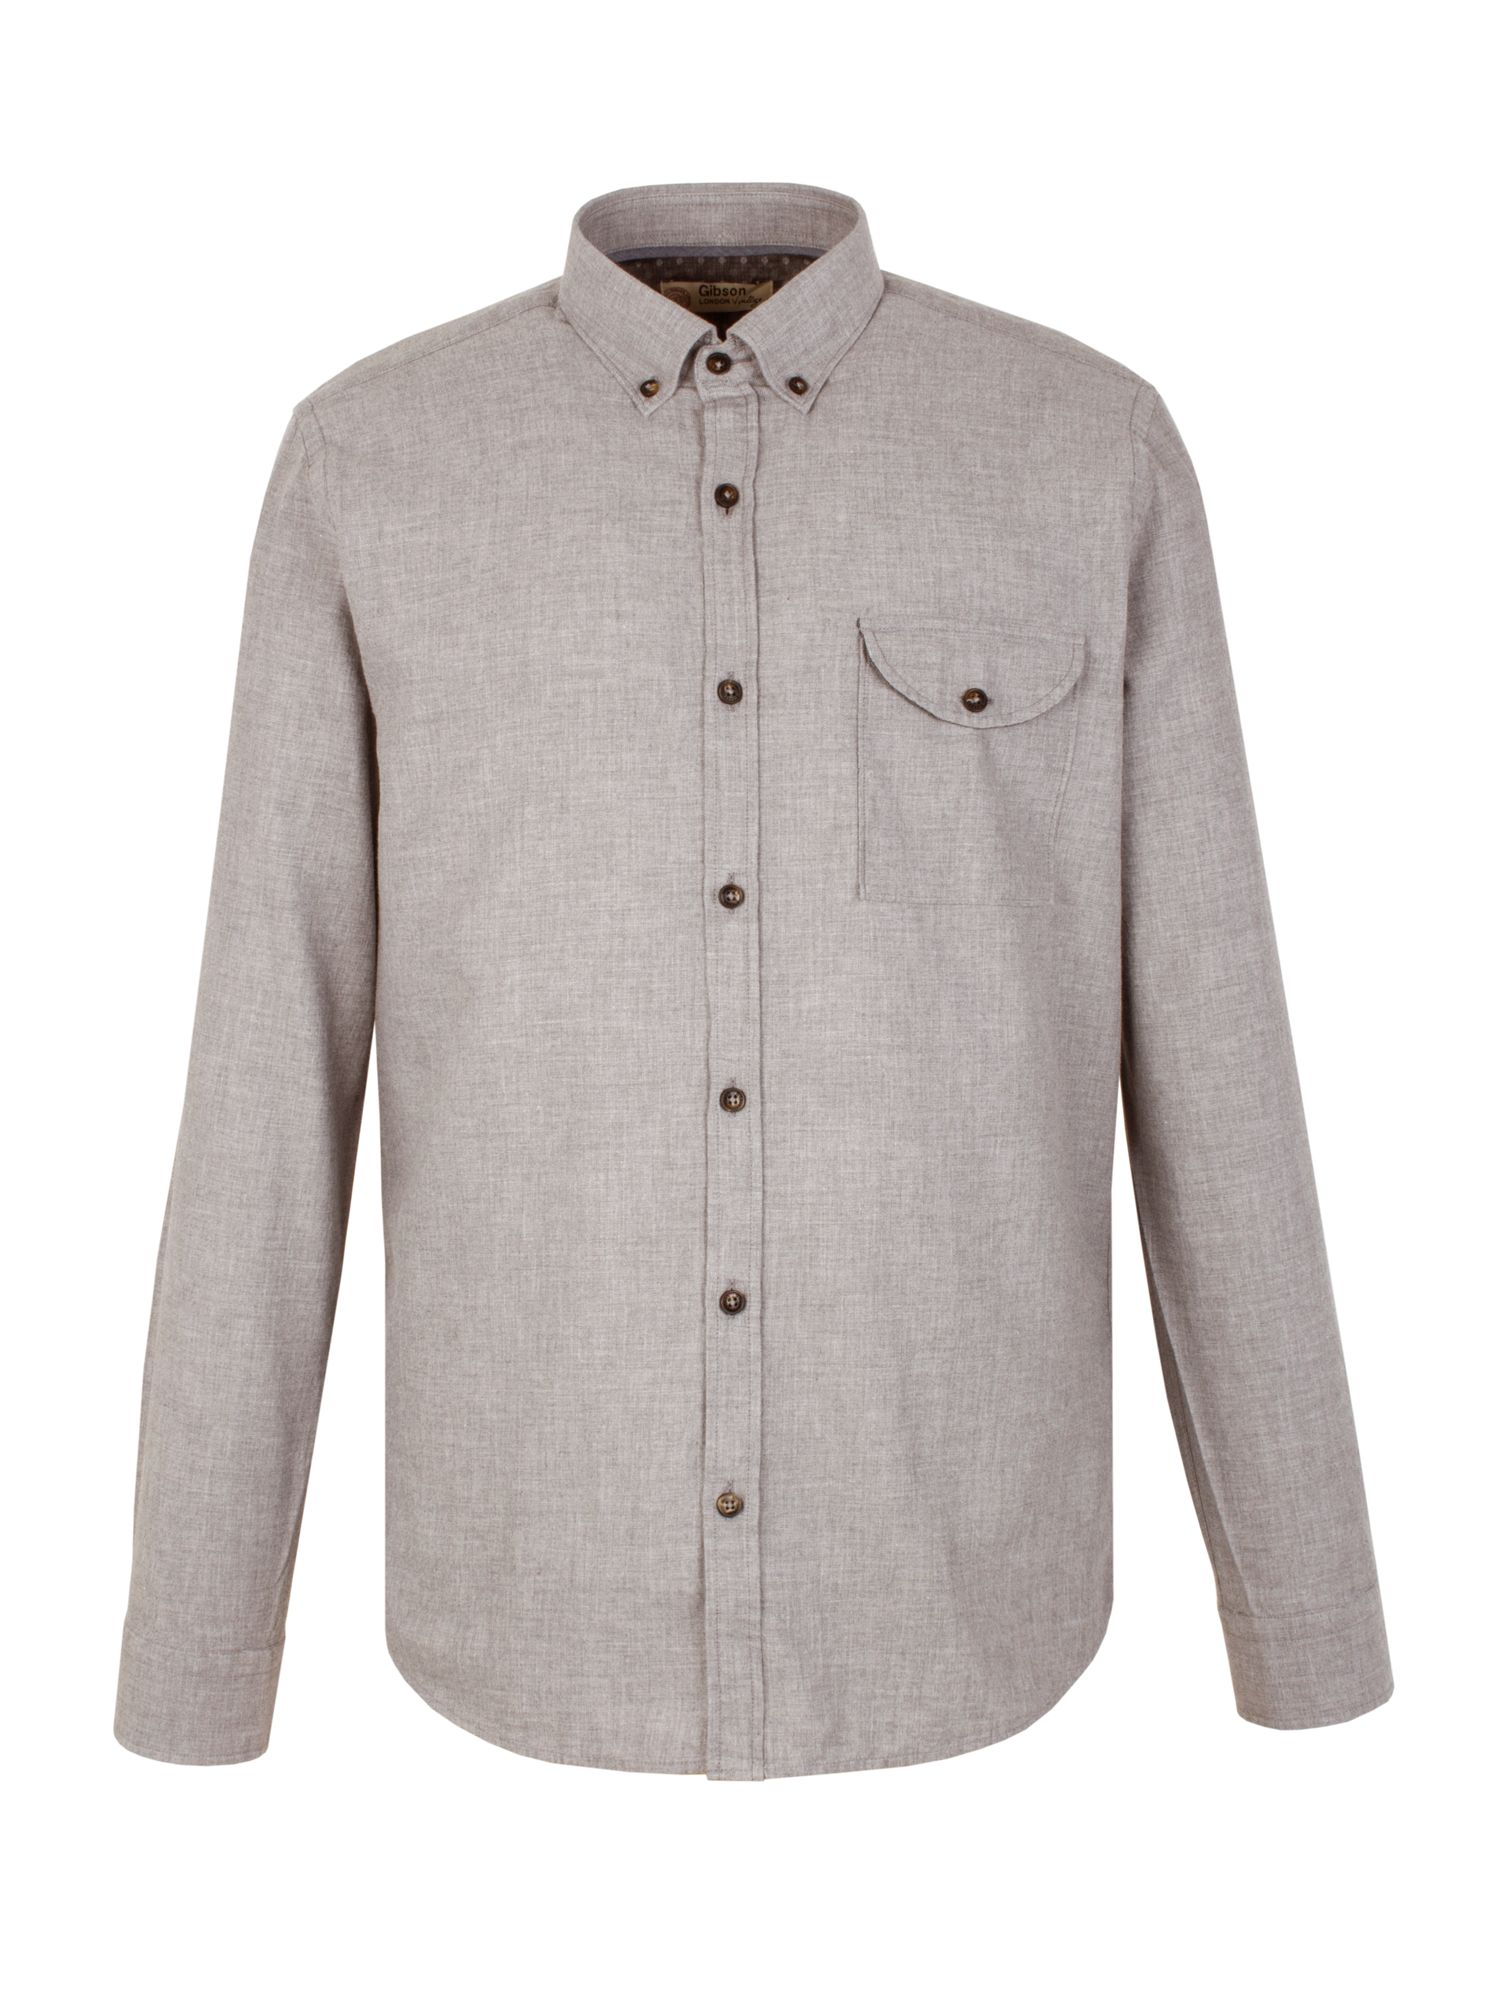 Mens Gibson Plain Tailored Fit Long Sleeve Button Down Shirt Silver